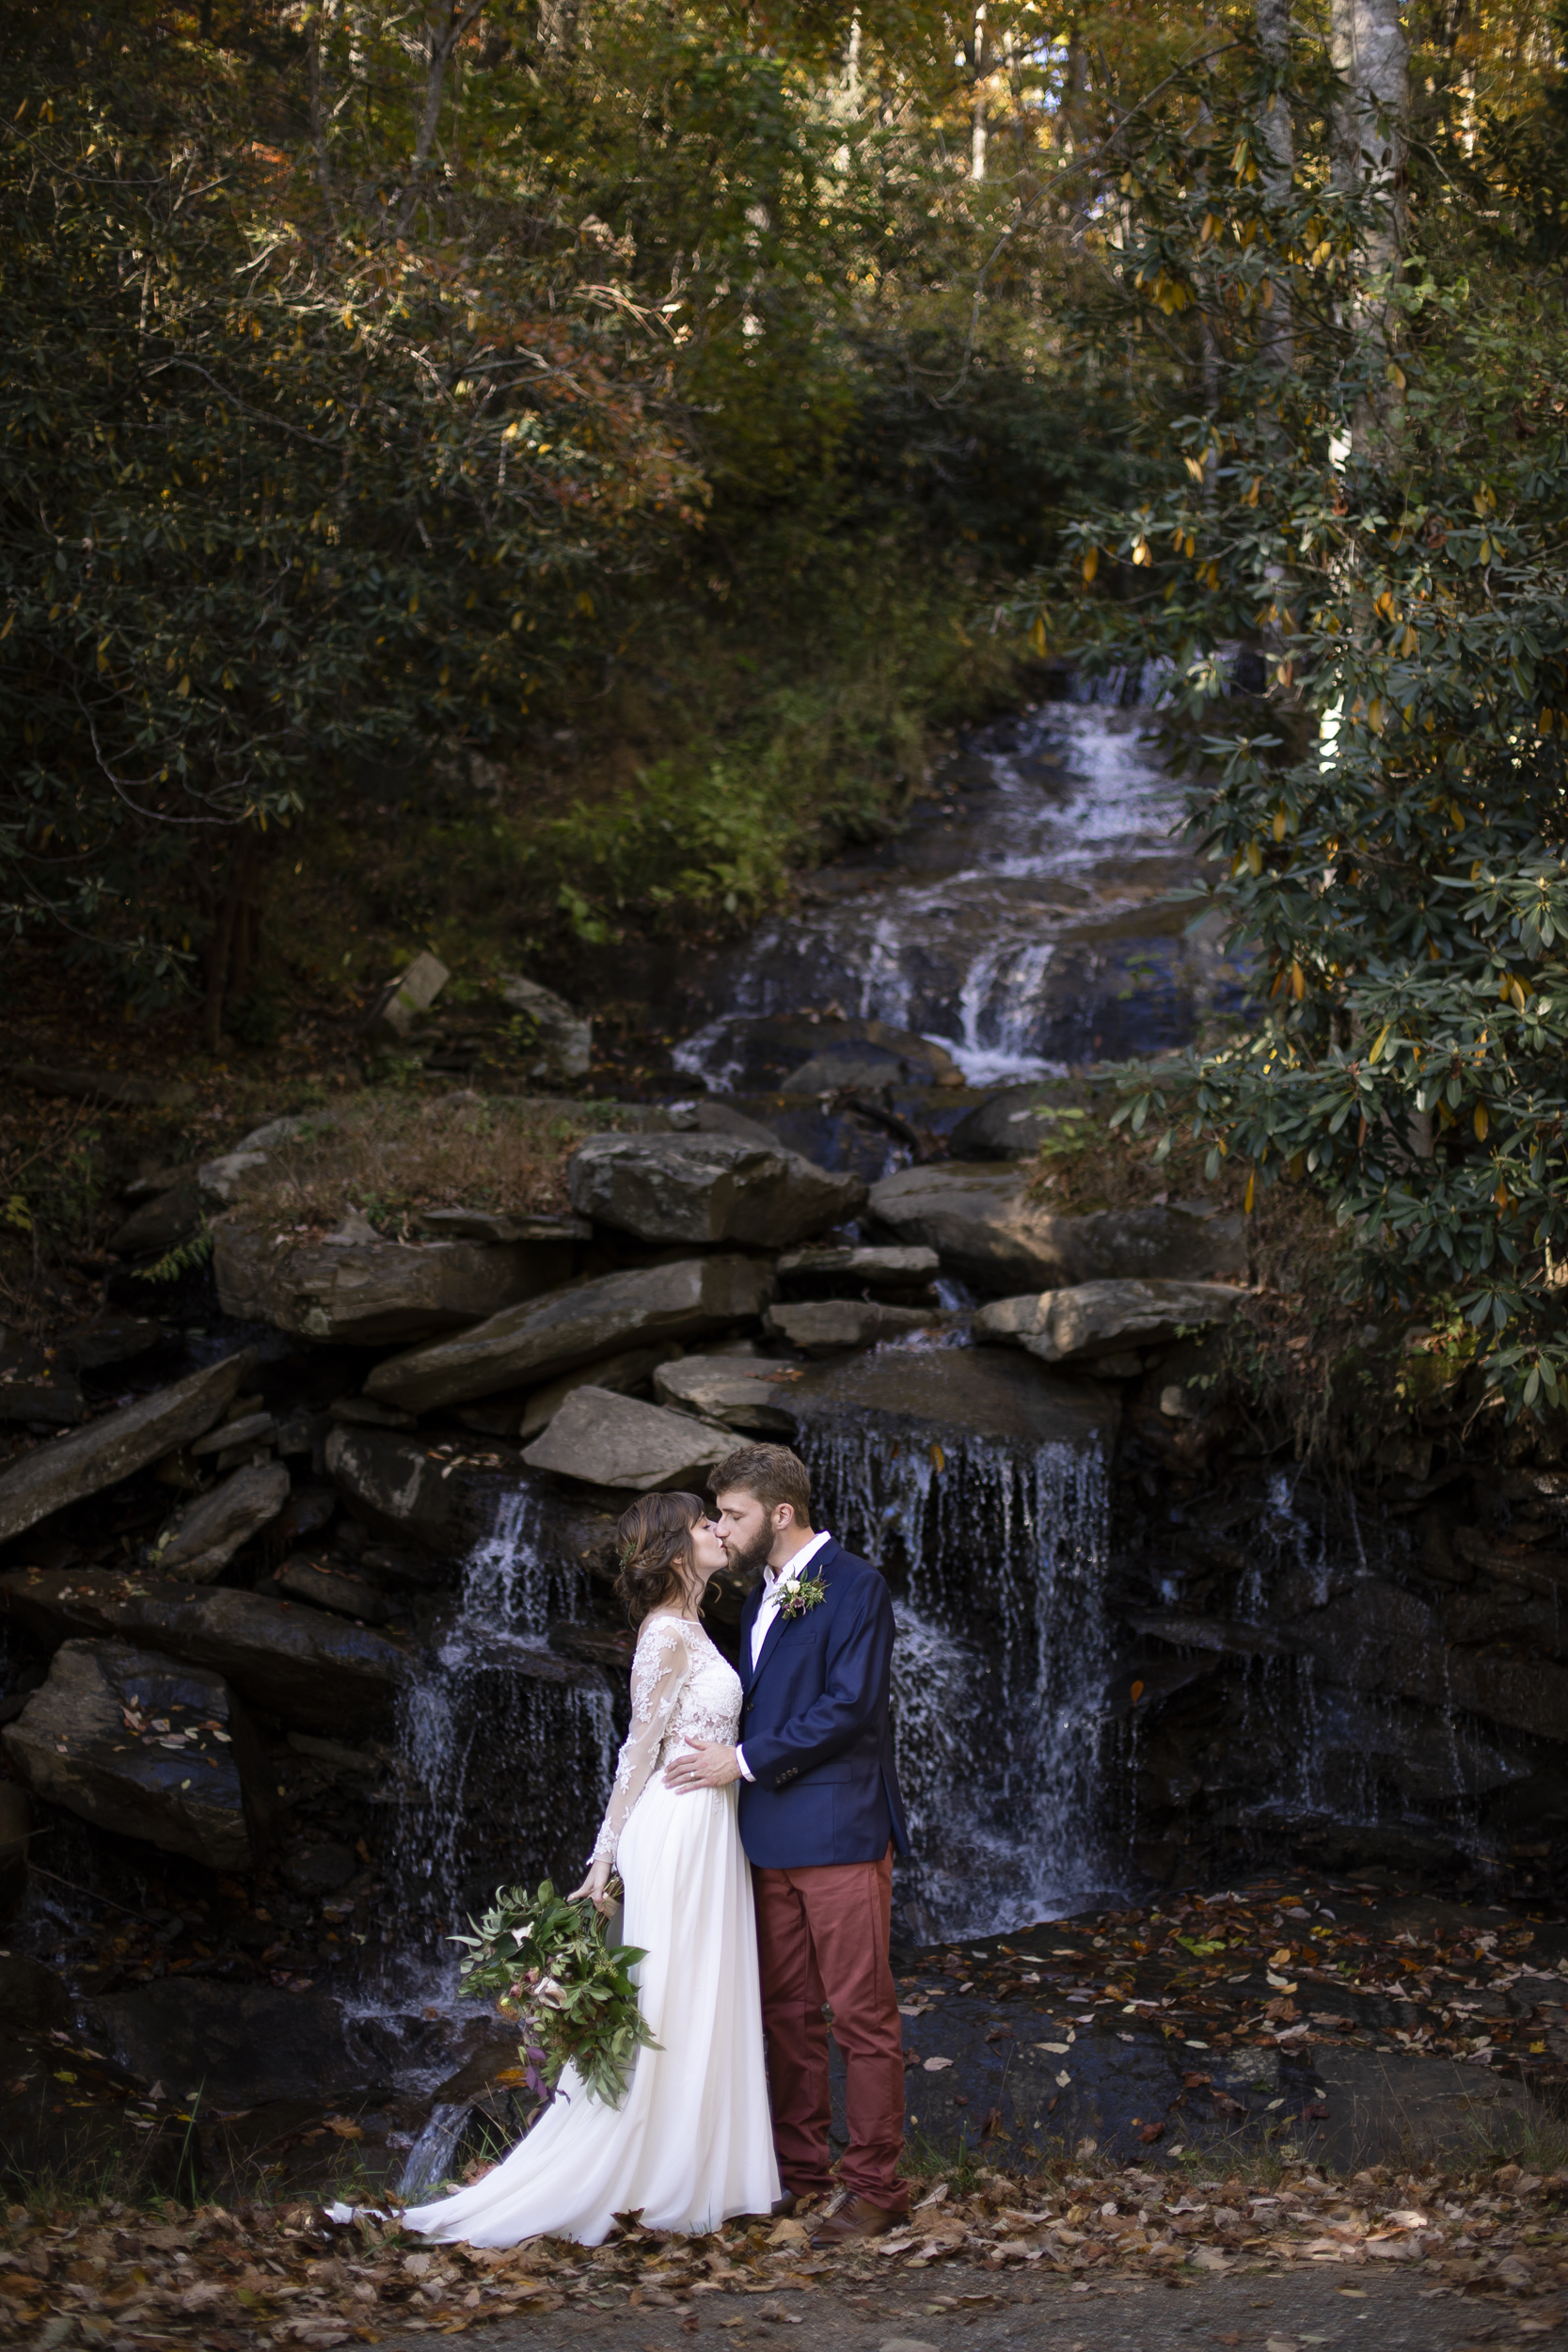 Laurel Falls Wedding October 2018_Allison and Josh__Lola Salon_Flora_Photo by Studio Misha Photography-106.jpg